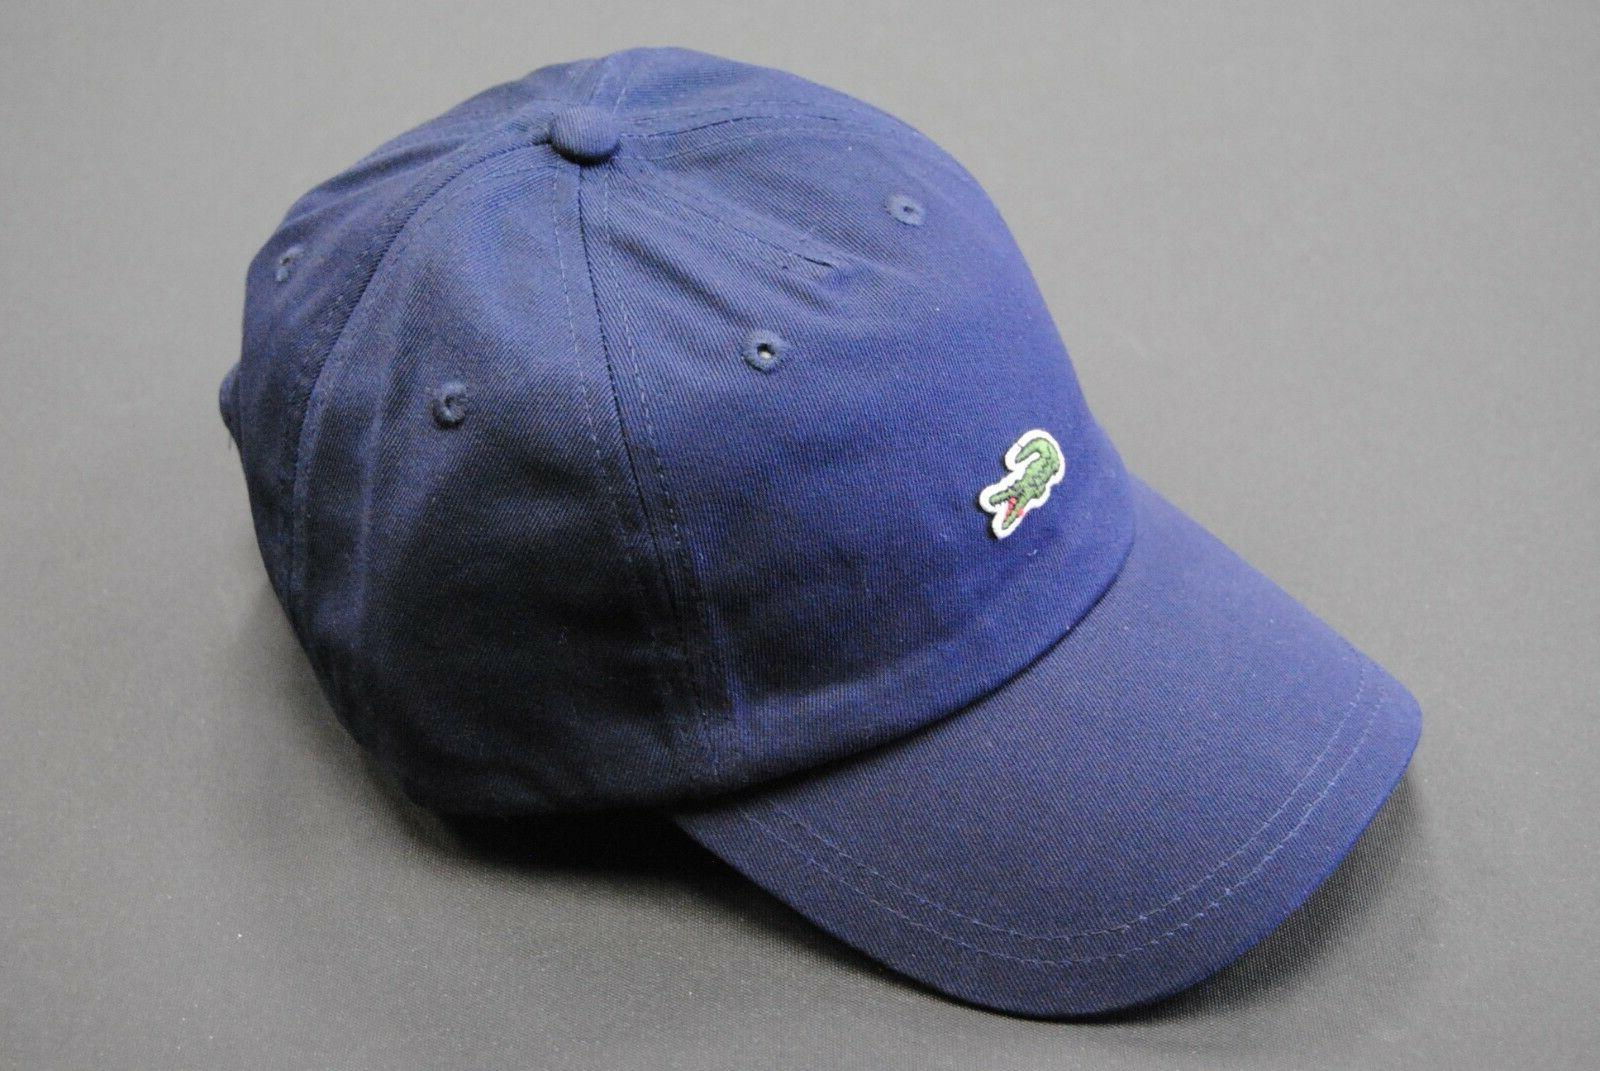 NEW SMALL STRAPBACK HAT ADJUSTABLE